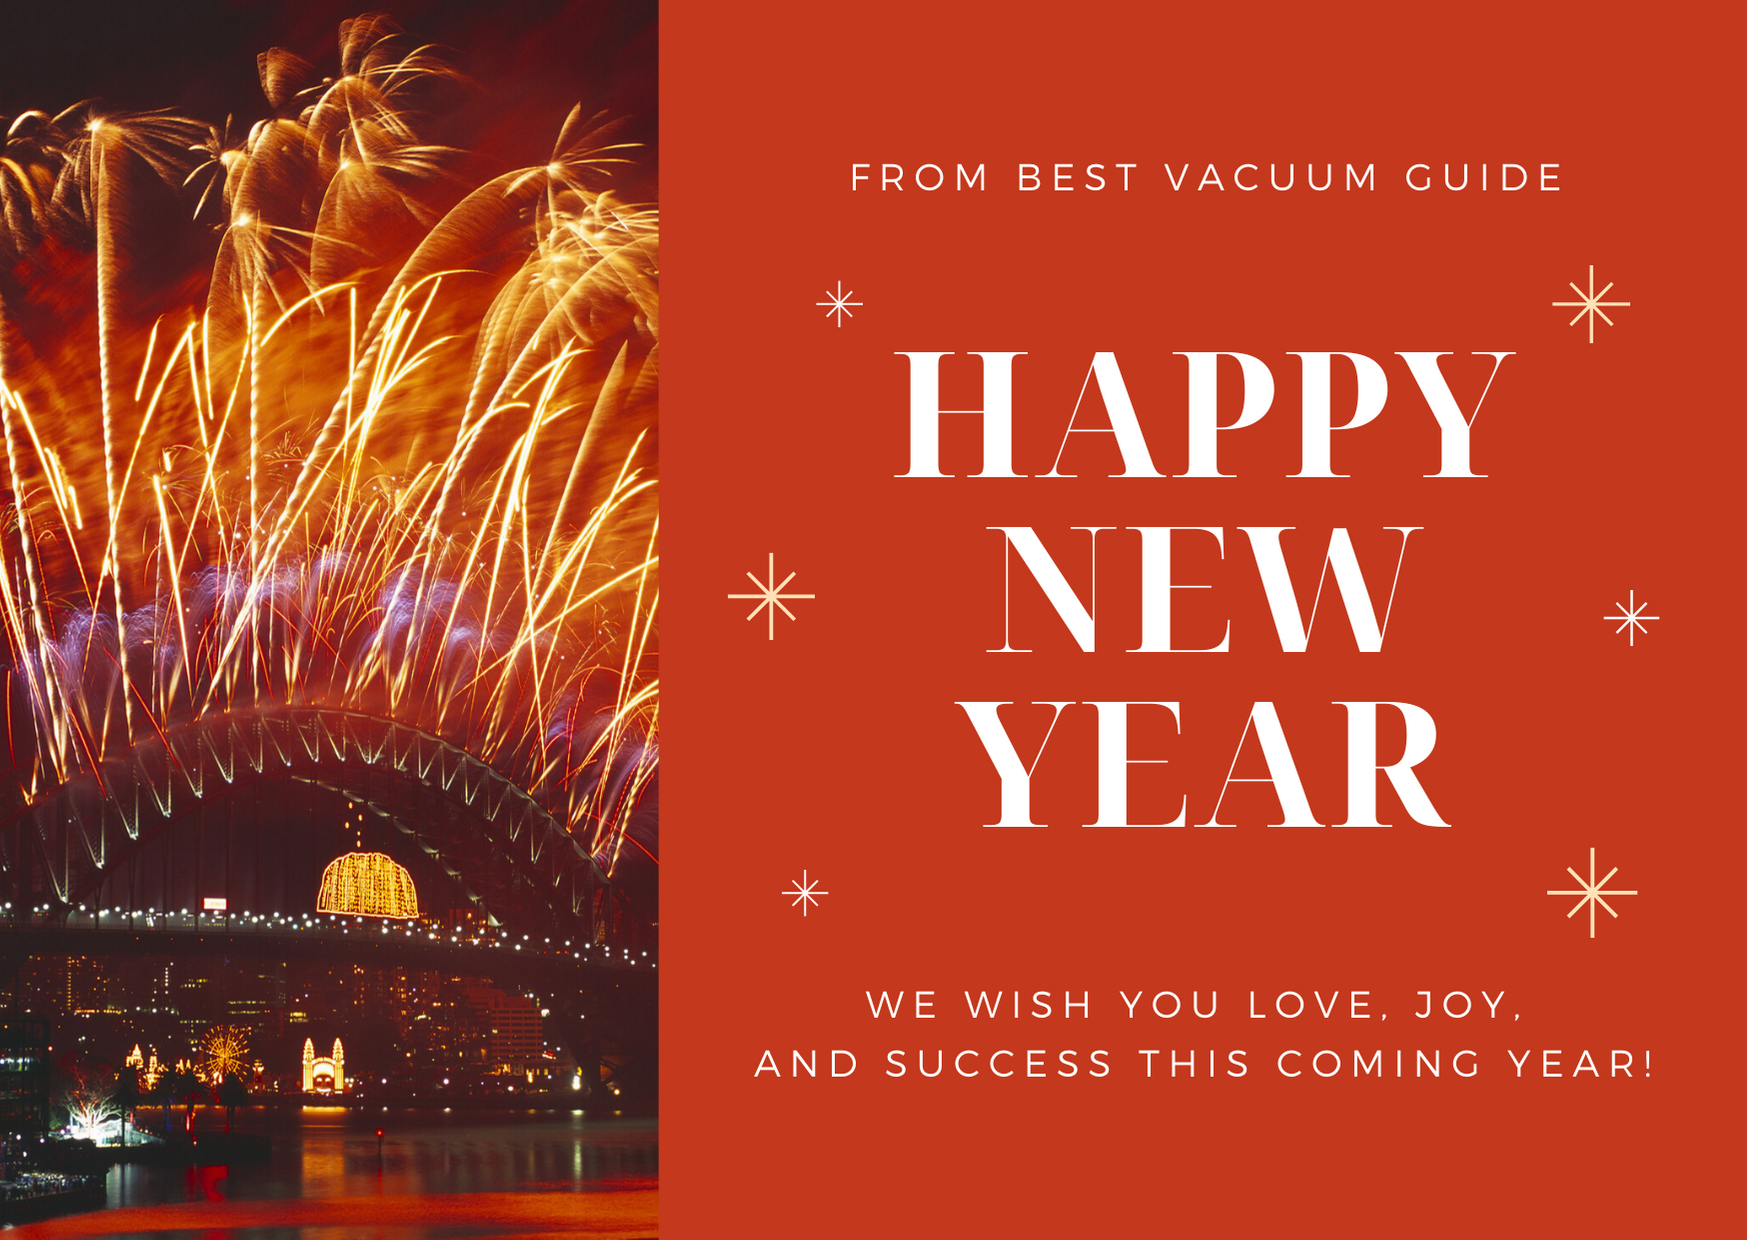 New Years Gift Ideas for Someone Who Loves Vacuum Cleaners - Happy New Year